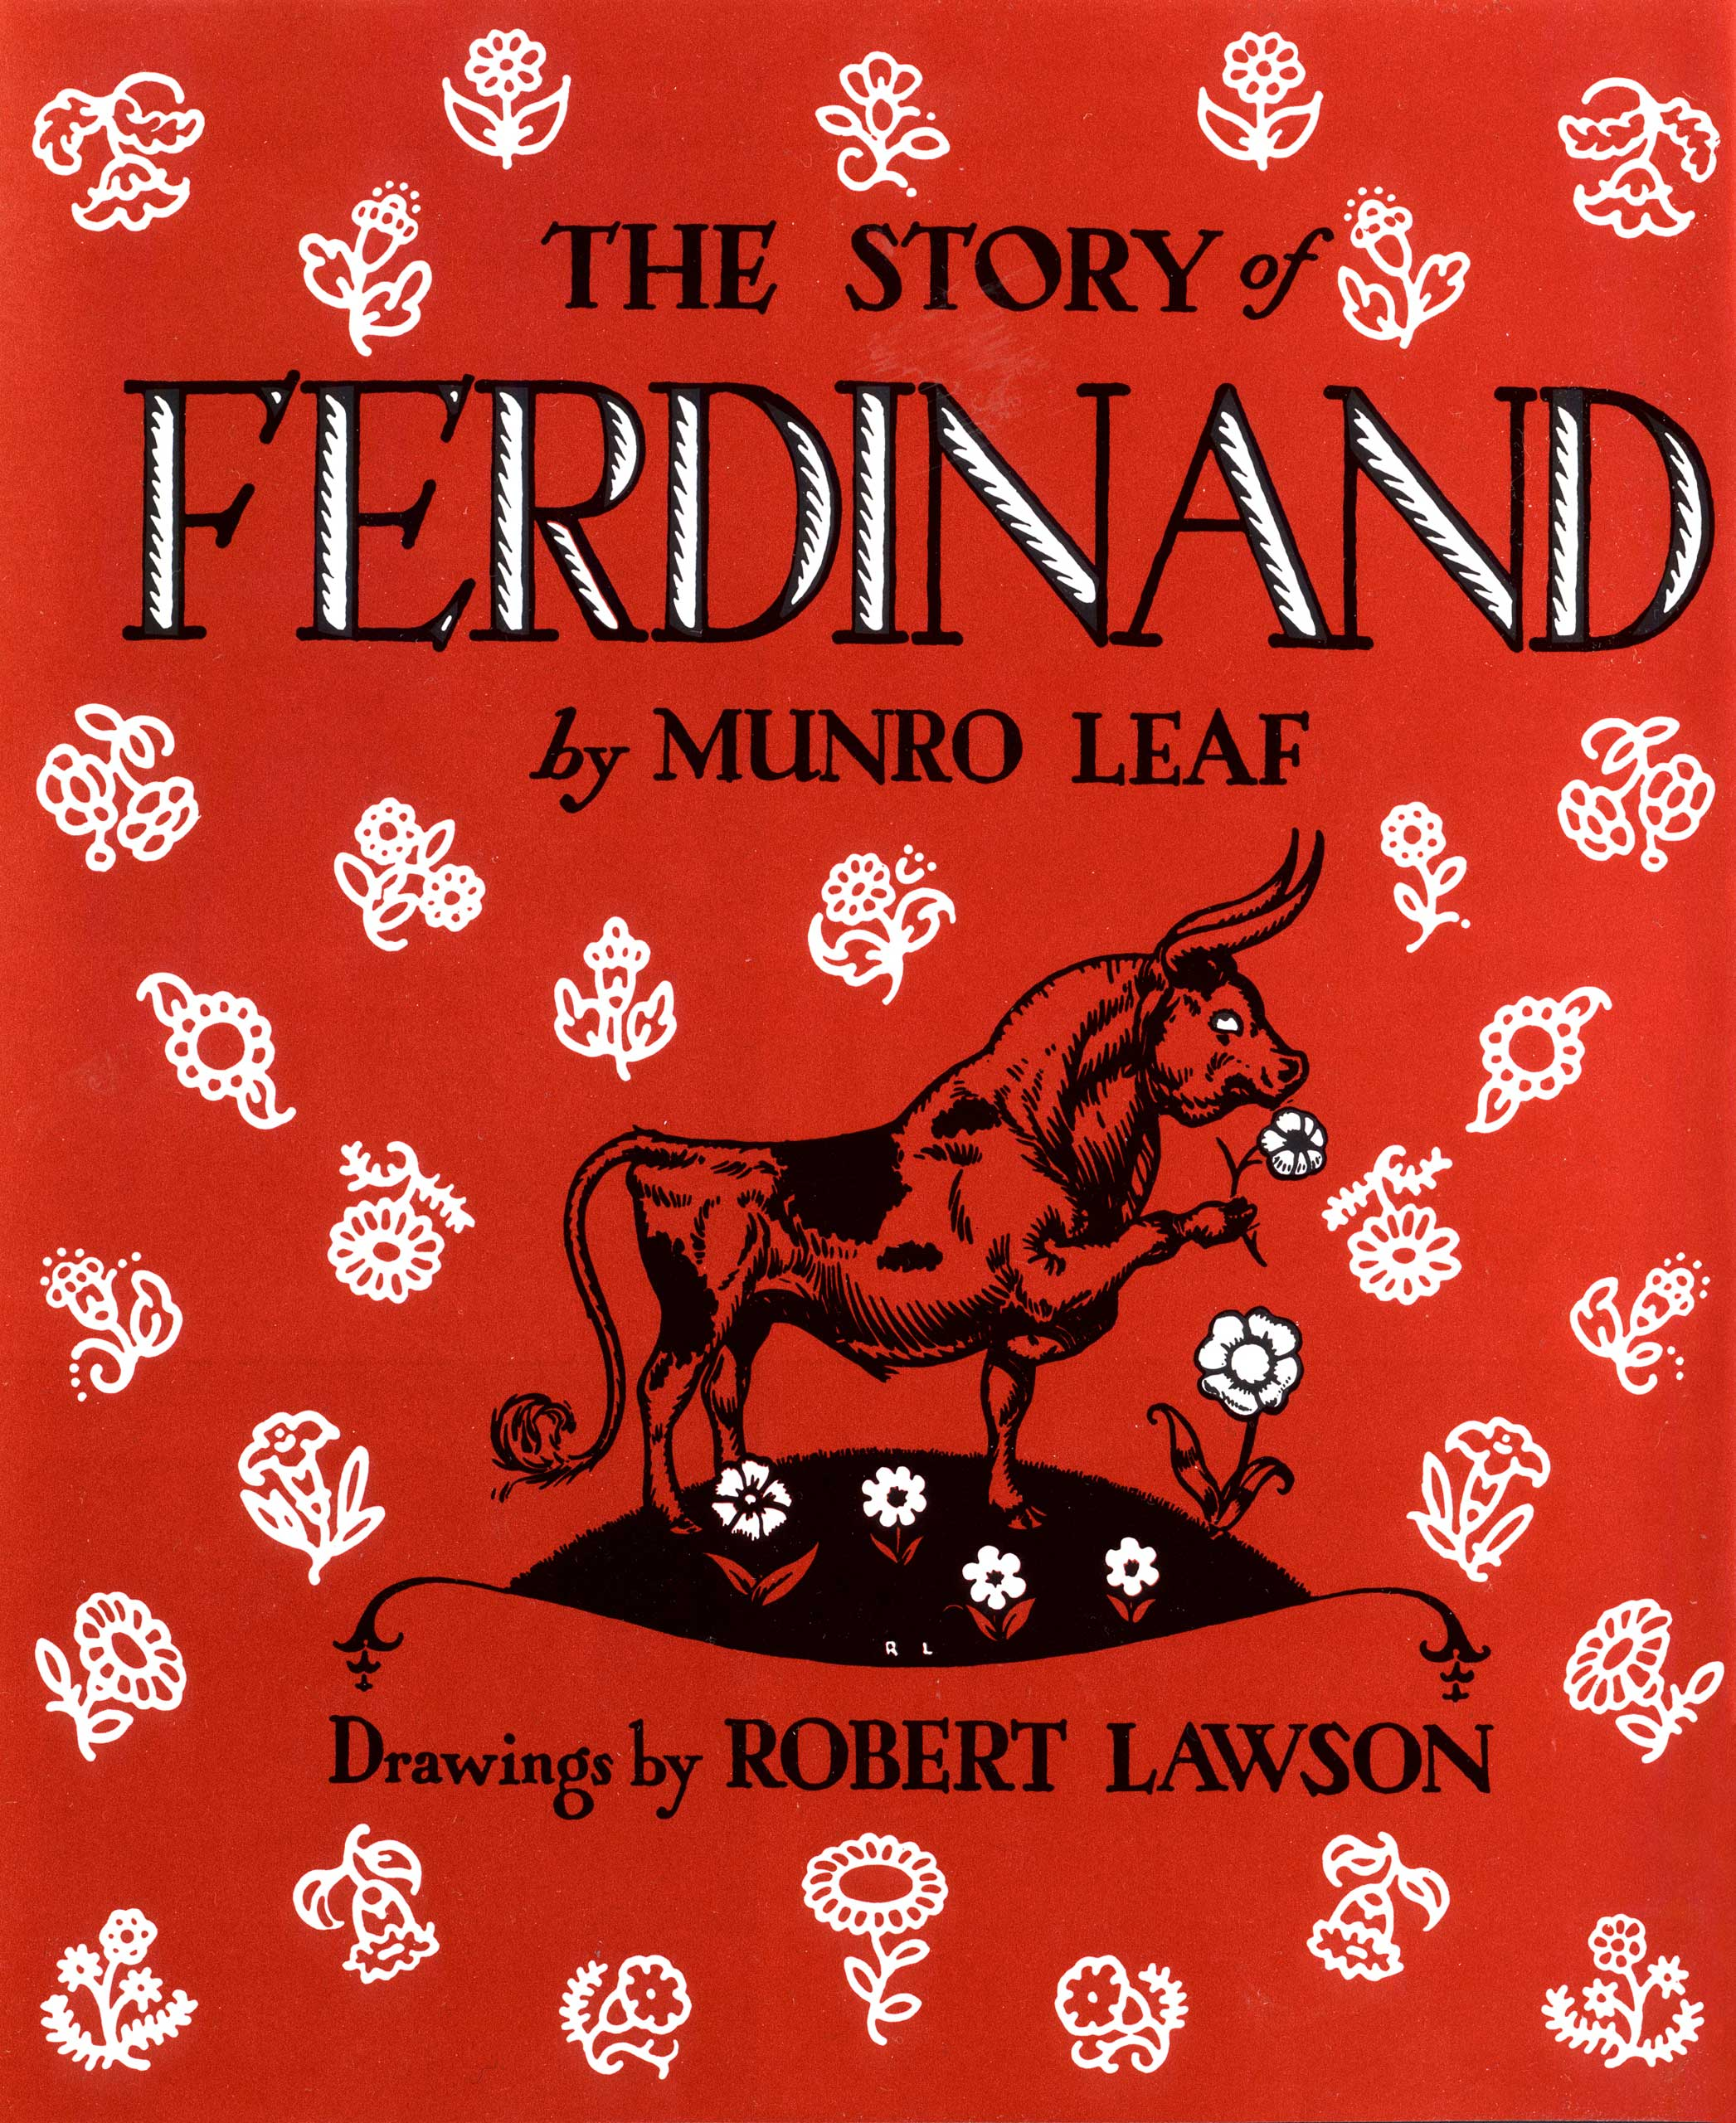 The Story of Ferdinand, by Munro Leaf, illustrations by Robert Lawson.                                                                                                                            Contrary to the stereotype of his species, Ferdinand is a calm, peaceful bull who likes to relax under the cork tree.                                                                                                                            Buy now: The Story of Ferdinand